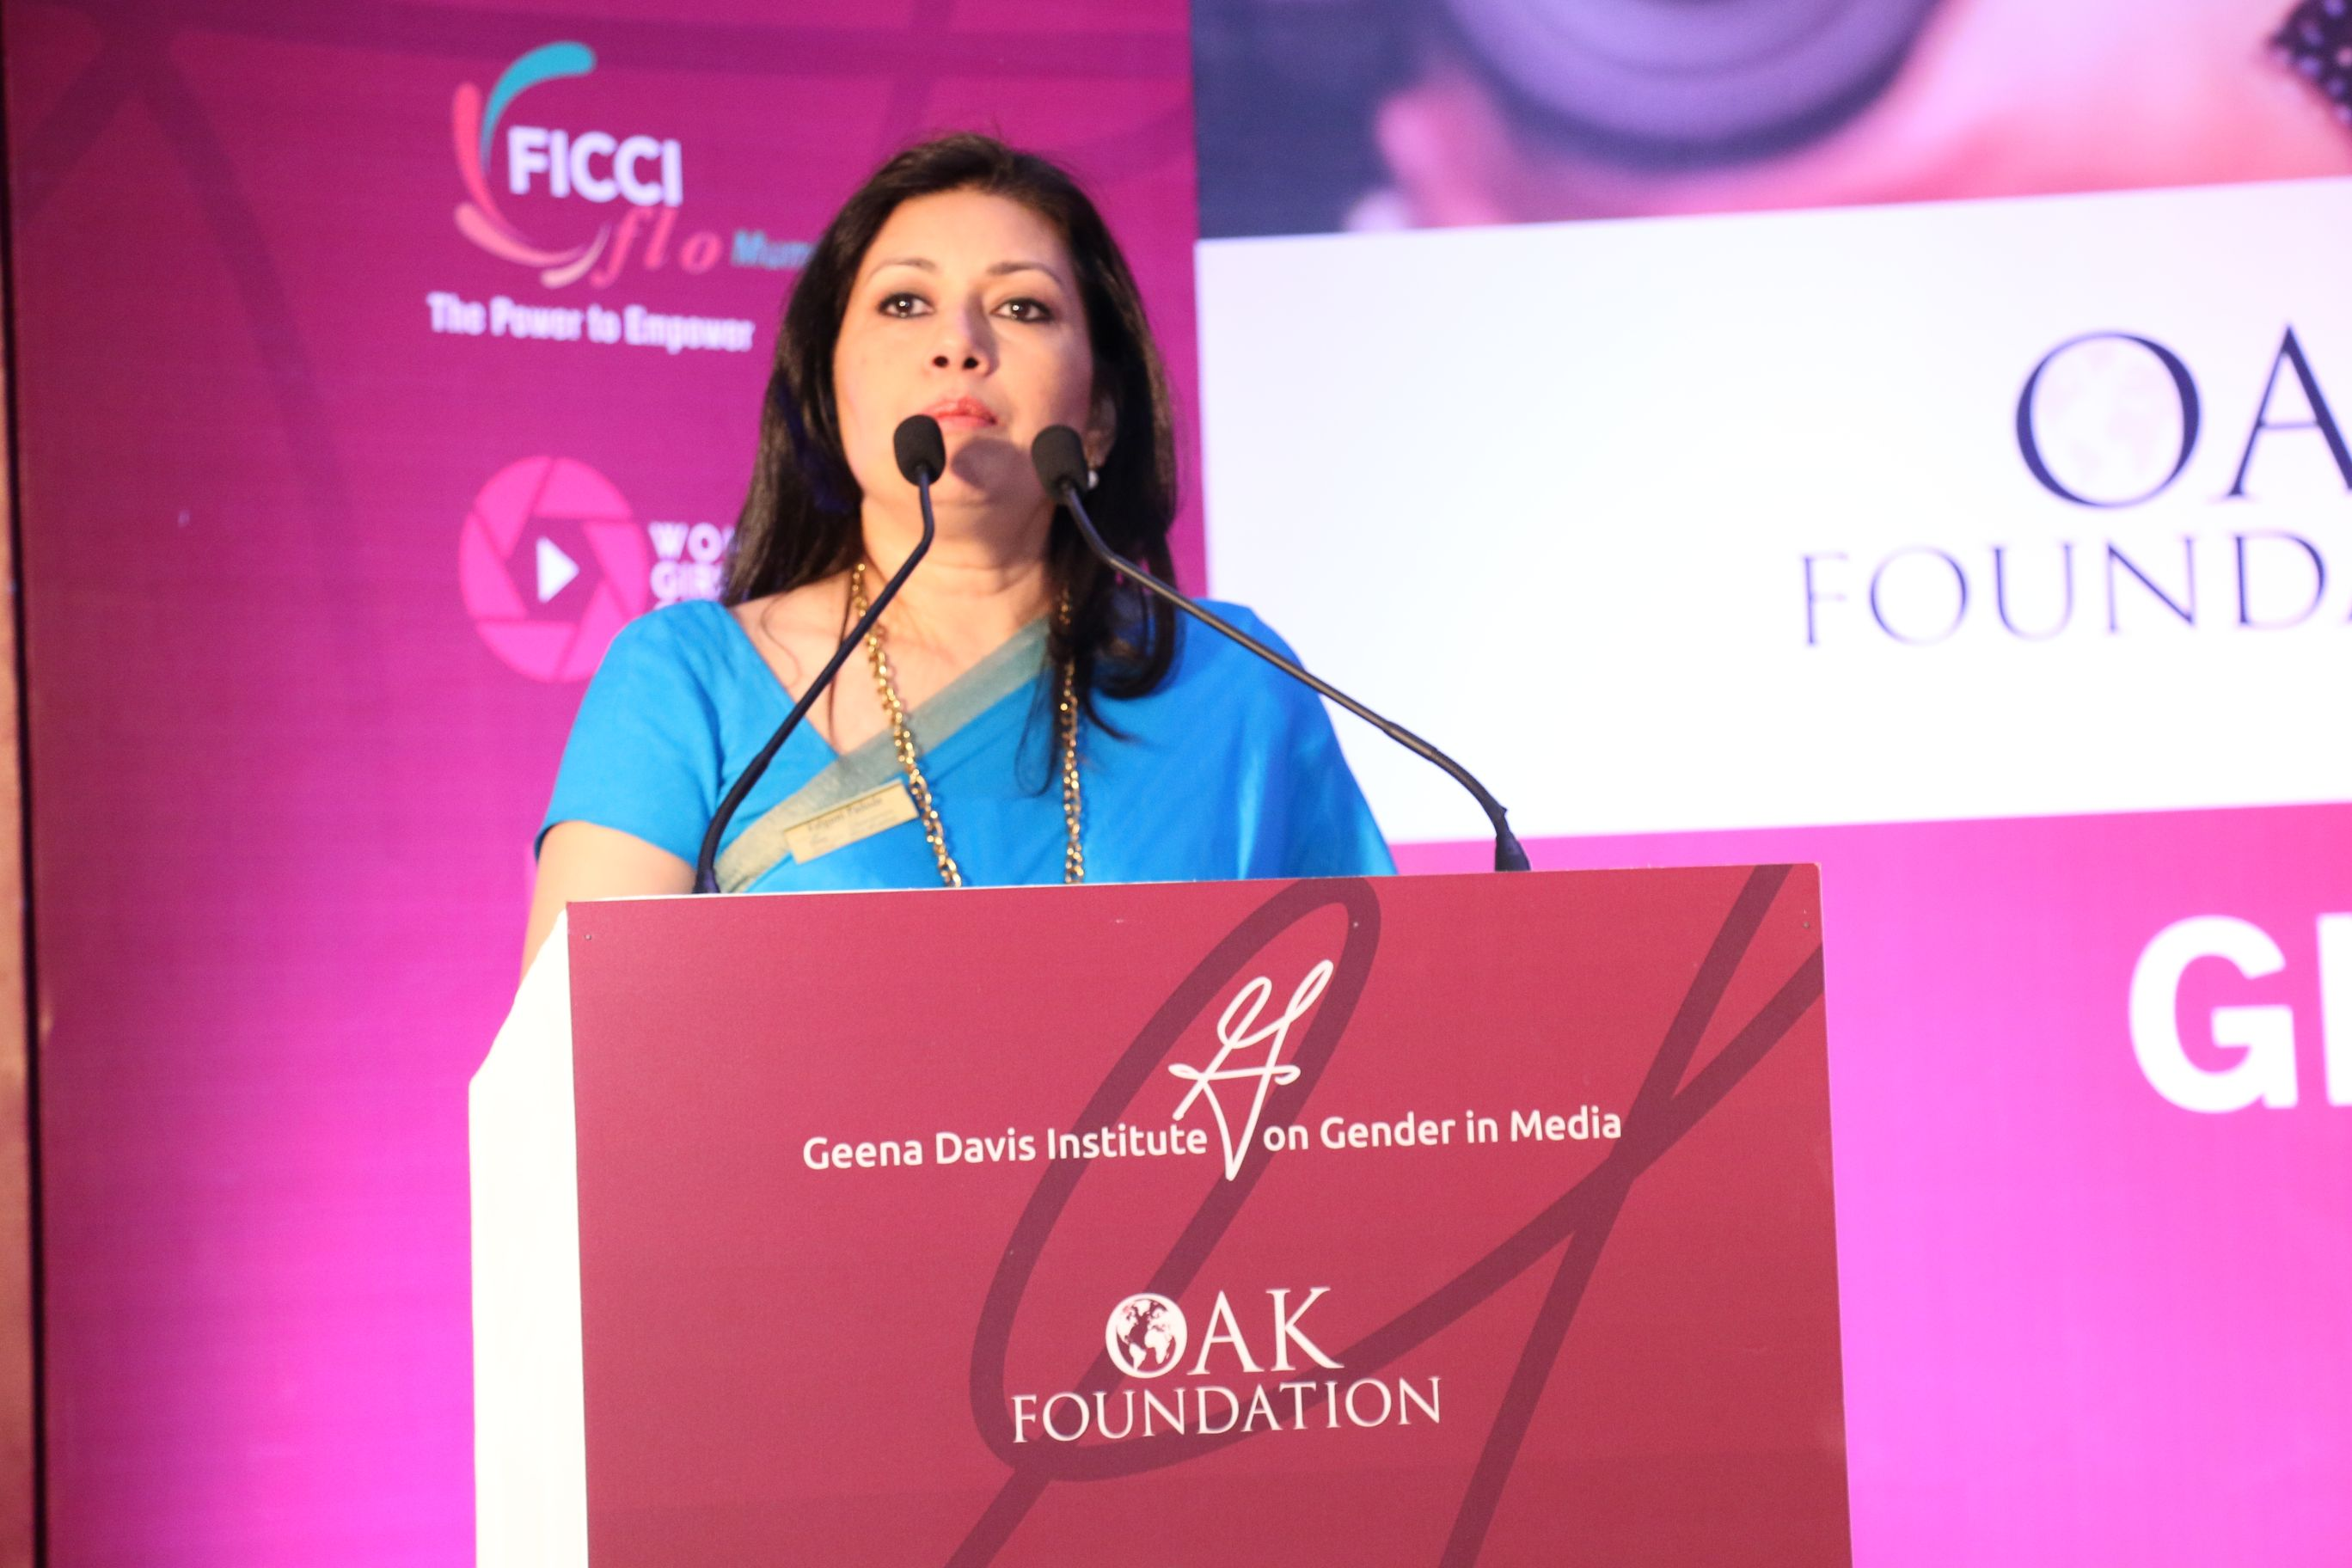 FLO - GDI on Gender, Mumbai